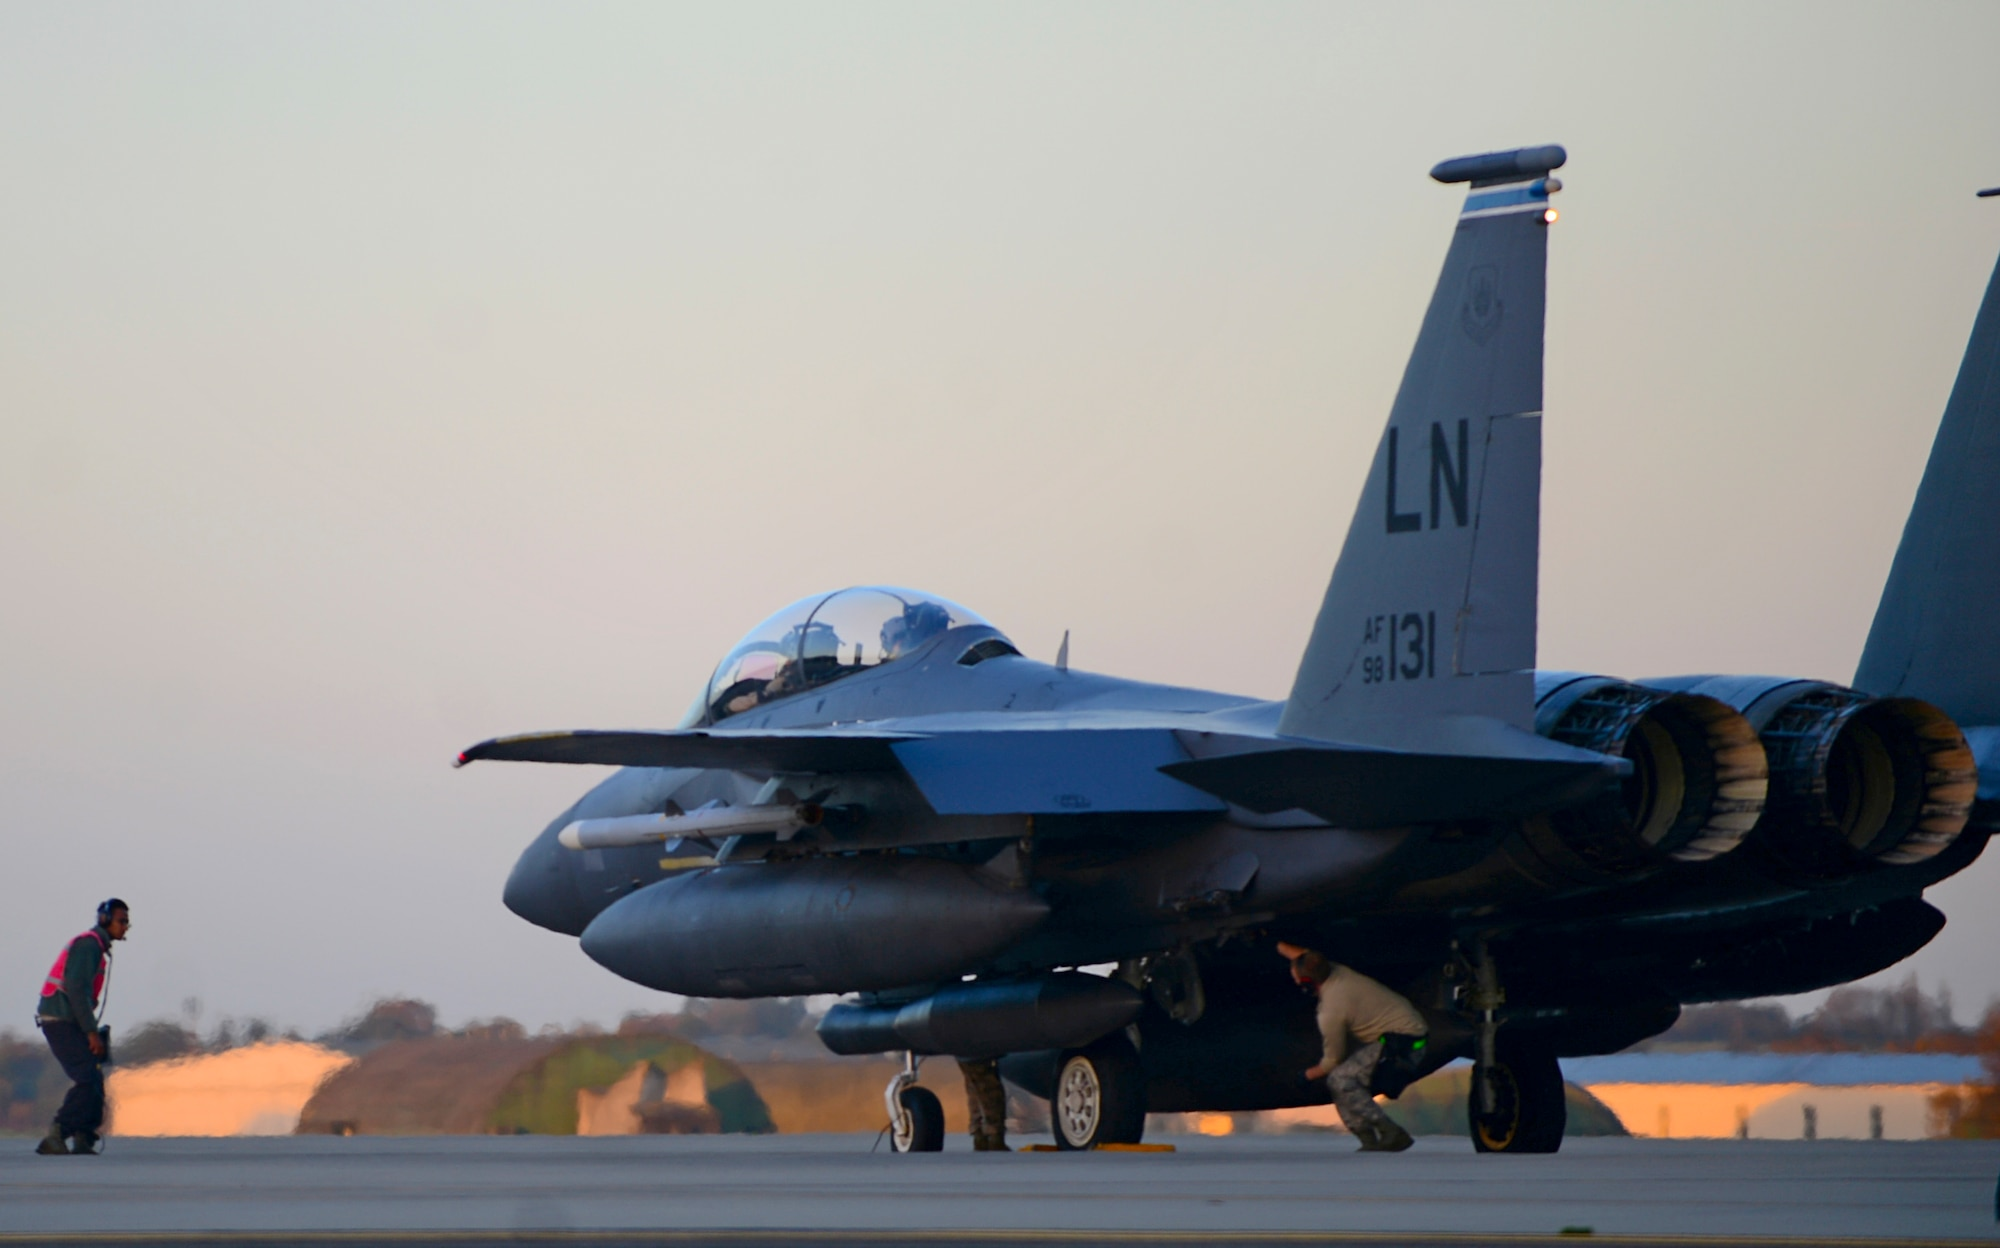 Maintainers inspect an F-15 E Strike Eagle before departure from Royal Air Force Lakenheath, England, in support of Operation Inherent Resolve Nov. 12, 2015. Aircraft from the 48th Fighter Wing deployed to Incirlik Air Base, Turkey, to conduct counter-Islamic State of Iraq and the Levant missions in Iraq and Syria. The dual-role fighter designed to perform air-to-air and air-to-ground missions in all weather conditions. (U.S. Air Force photo/Senior Airman Erin Trower)